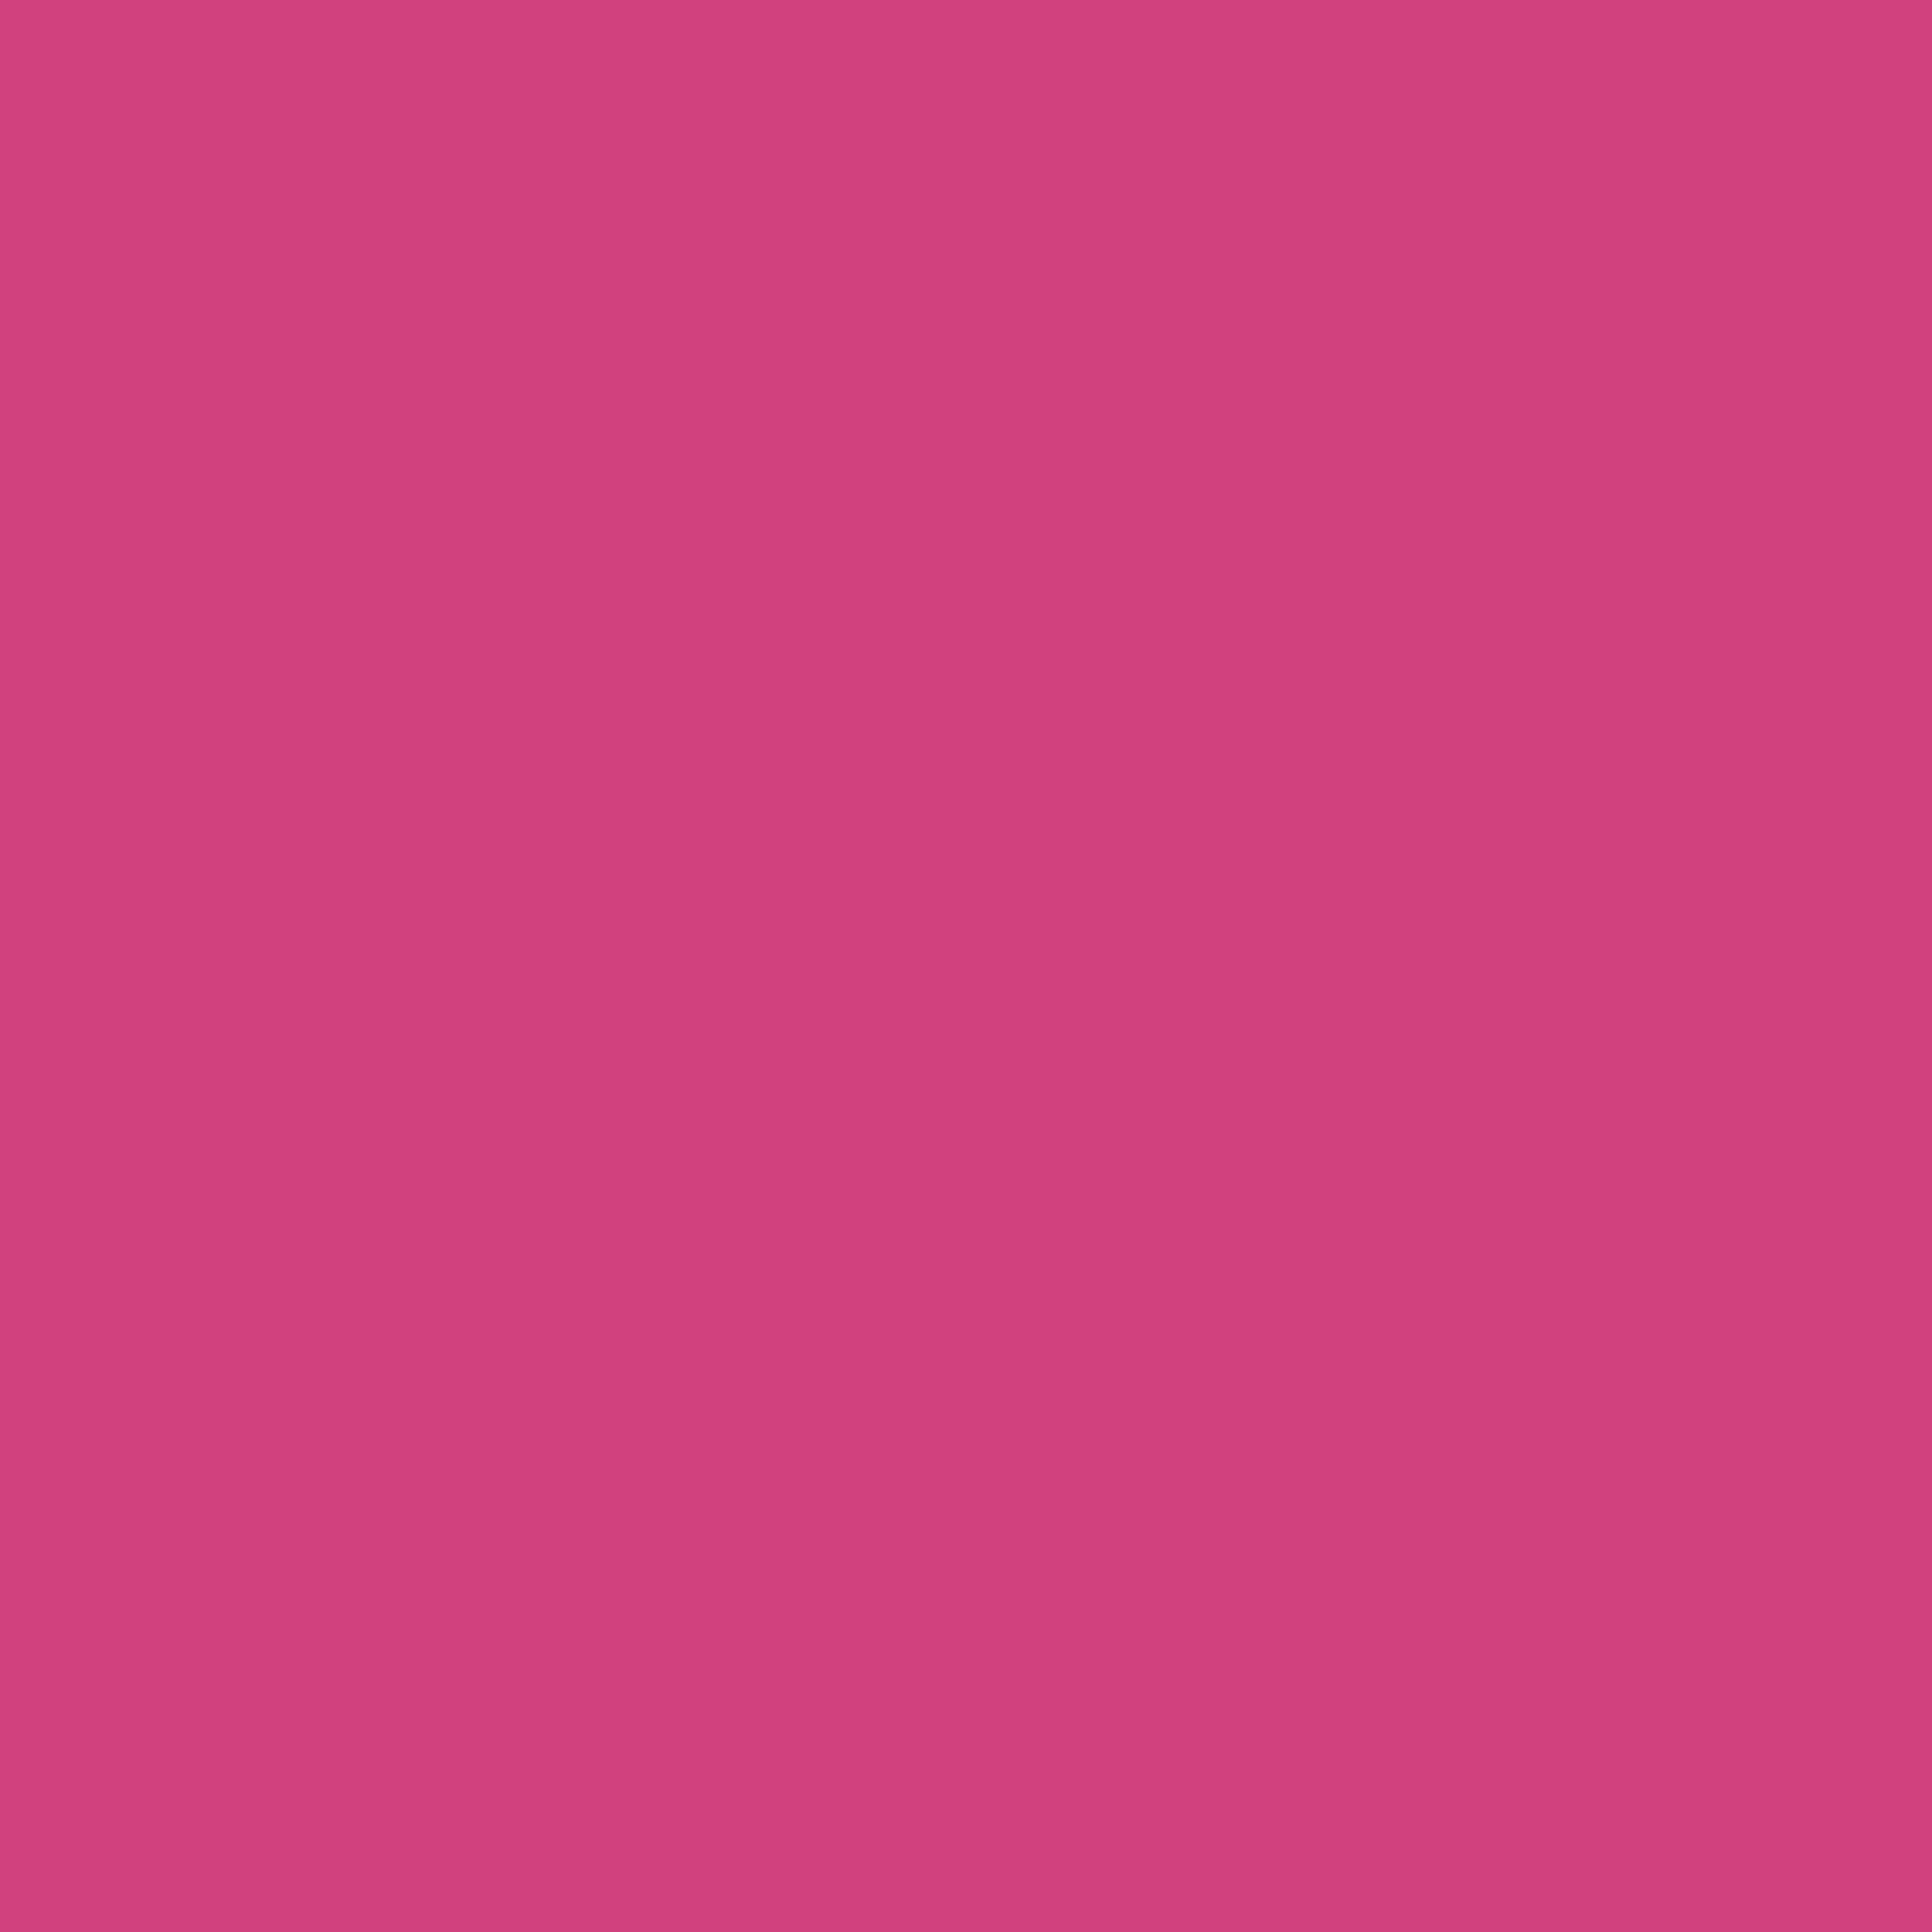 2732x2732 Magenta Pantone Solid Color Background